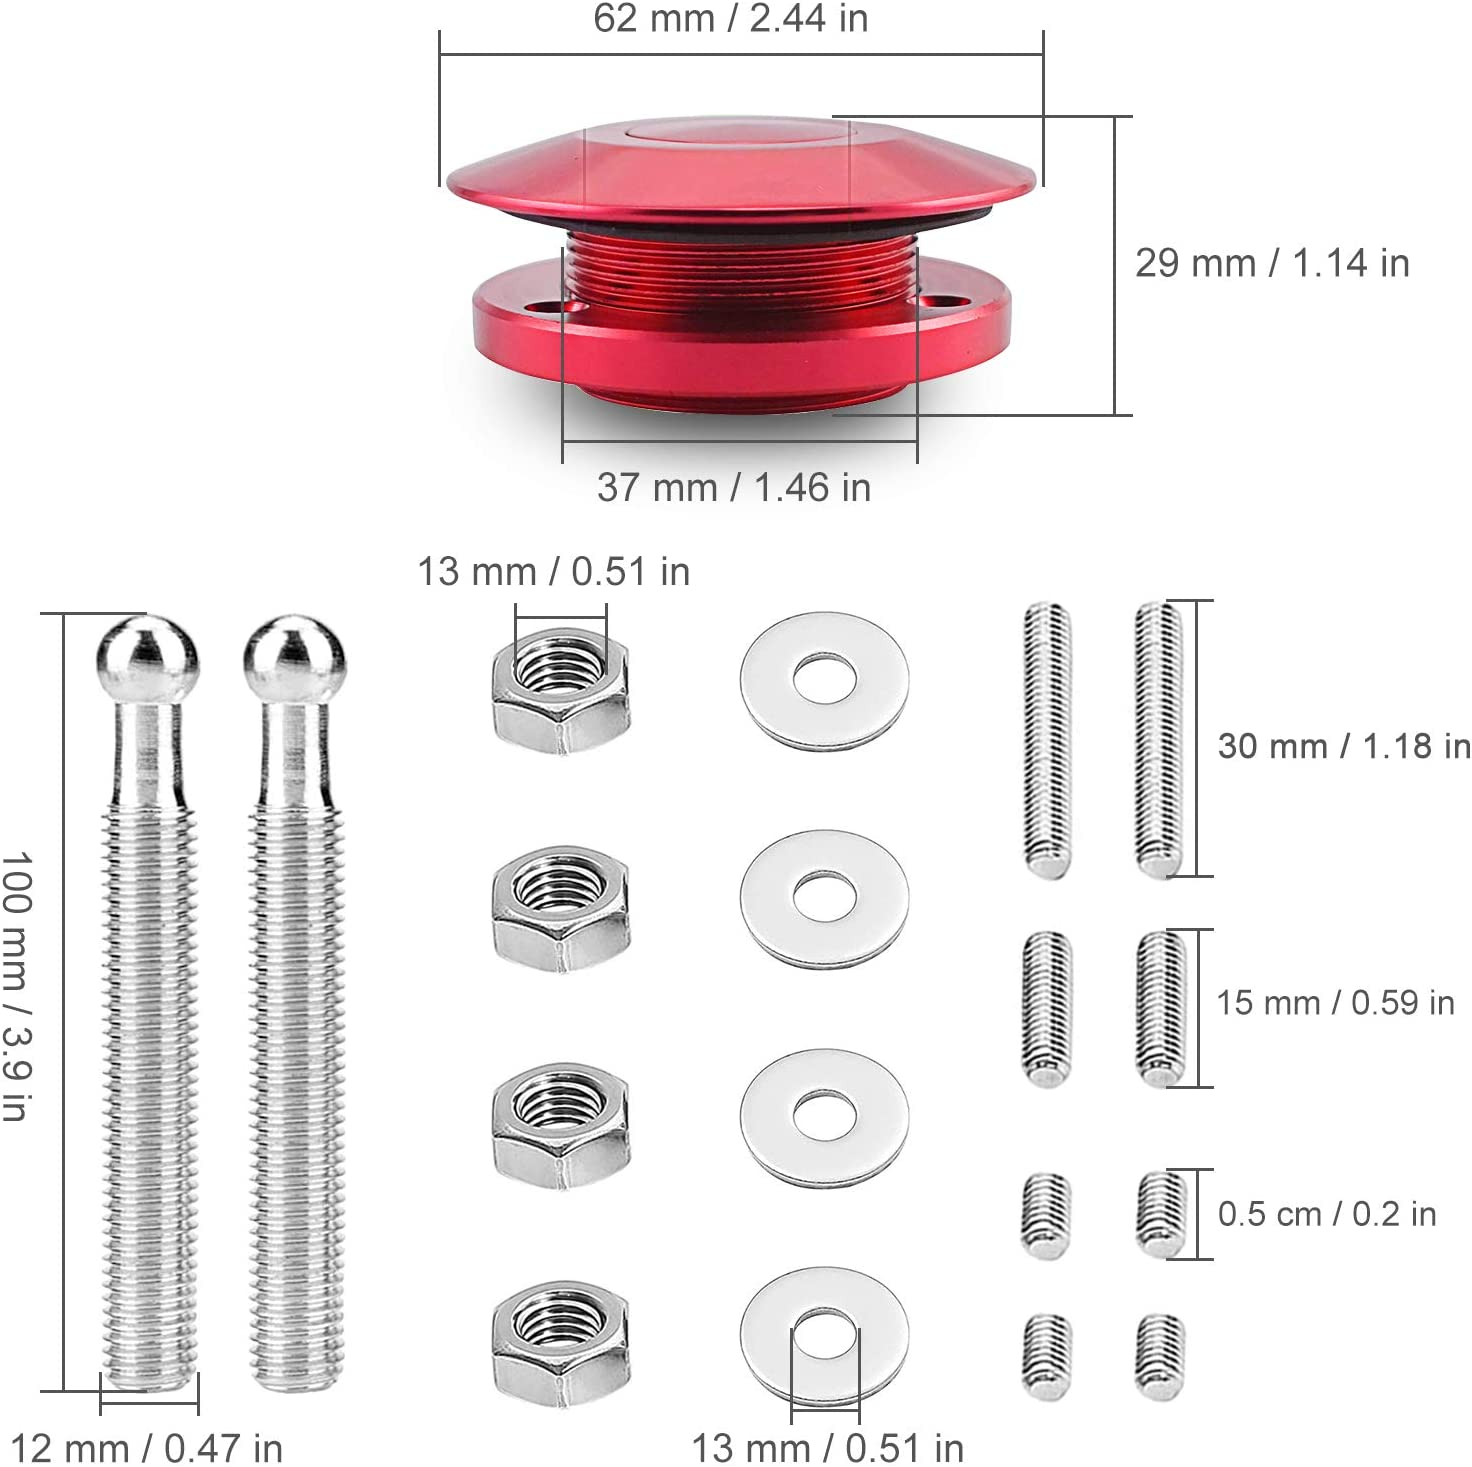 2.44 Diameter Quick Release Latch Push Button Hood Bonnet Pins Lock Clip Kit Red Hood Pins 2 Pack Quick Latch Aluminum Hood Pin Kits Car Bonnet Quick Release Hood Pins Lock for Cars or DIY